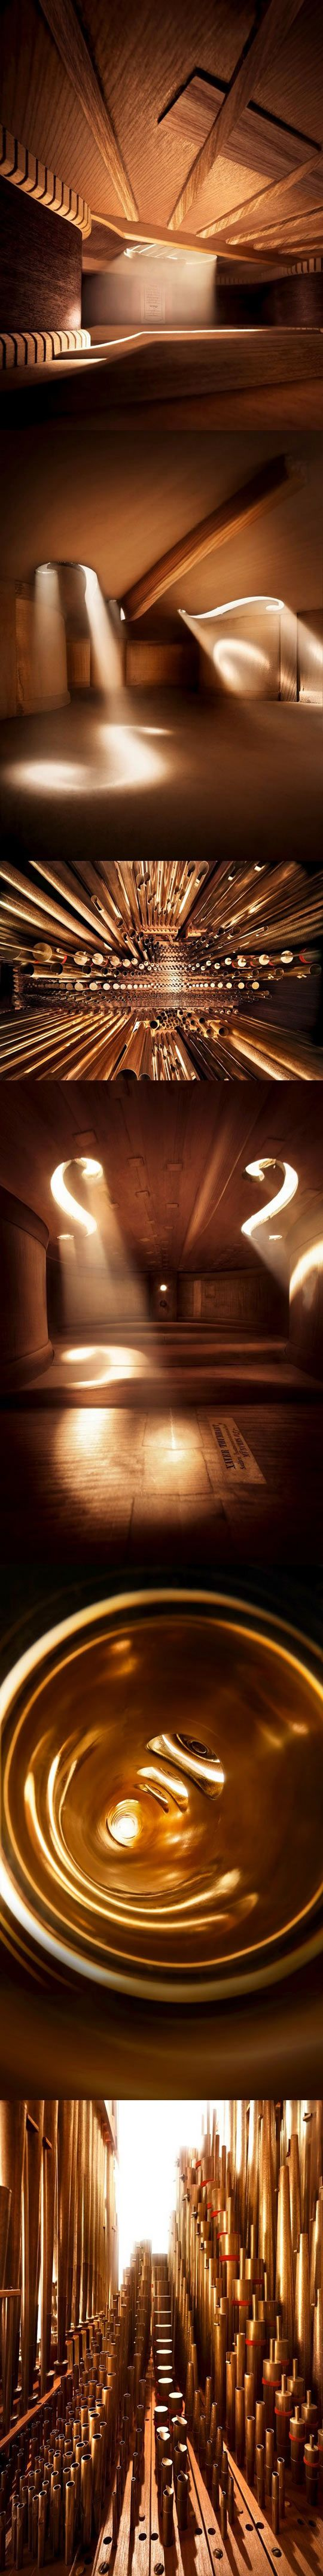 Inside beautiful musical instruments...Oh I though they were skylights. Beautiful idea nonetheless!